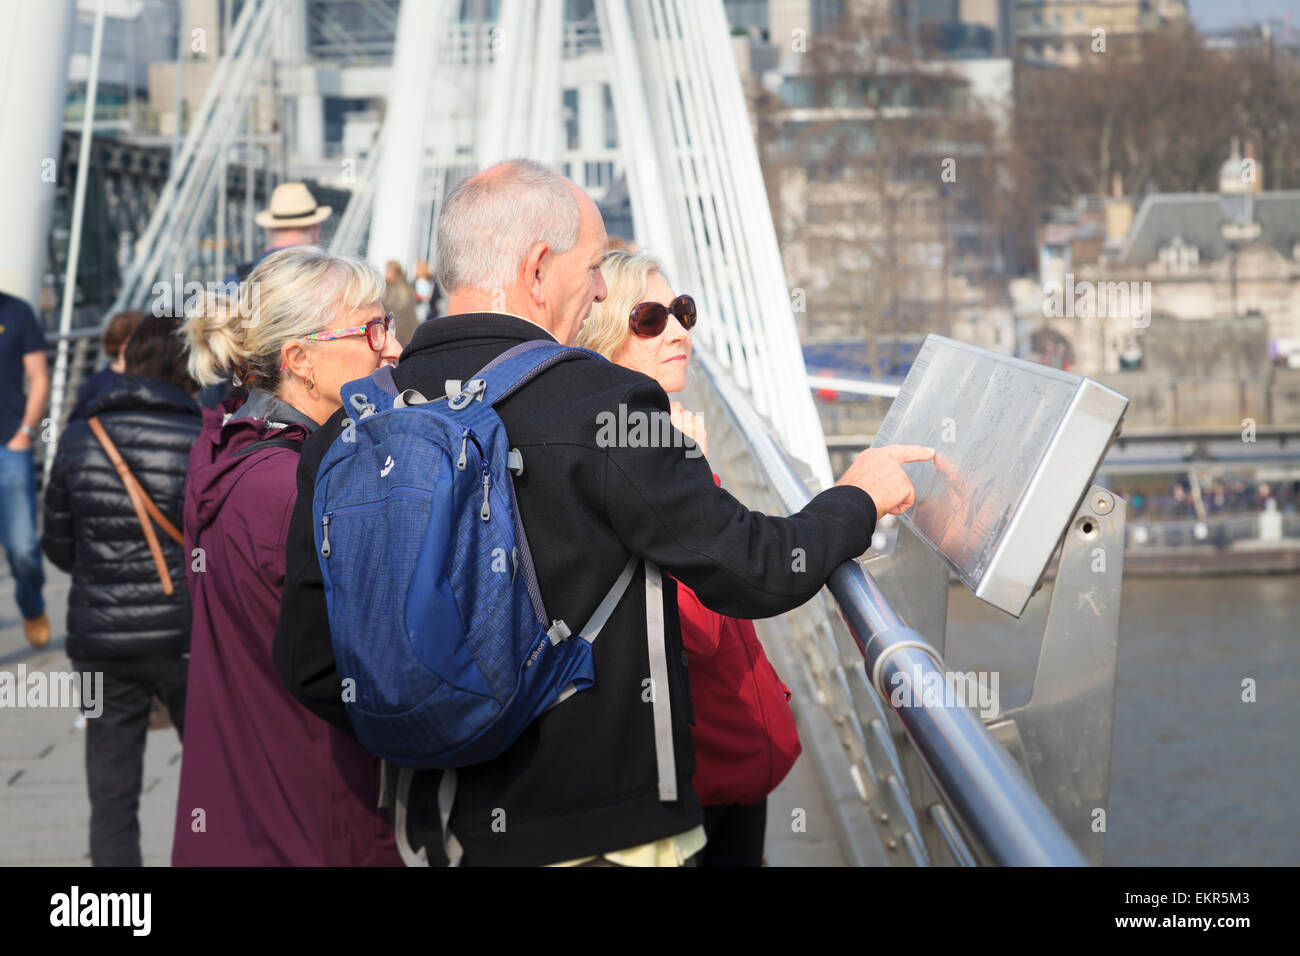 Tourists studying a landmark map on the Golden Jubilee Bridge over the Thames in London - Stock Image